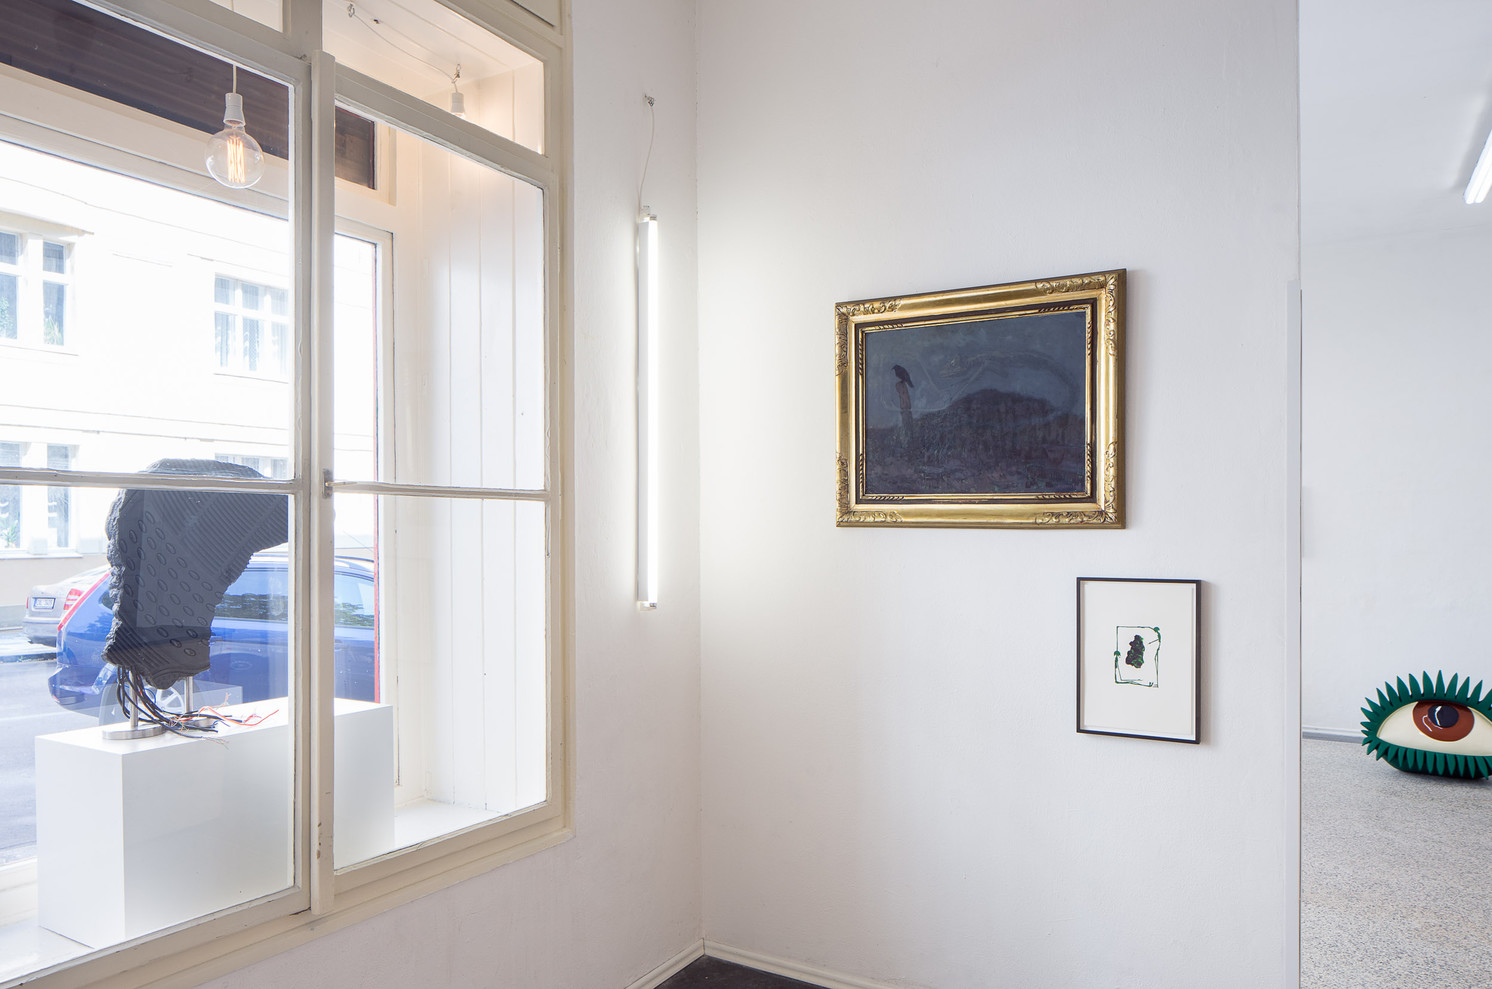 corner with paintings and sculptures